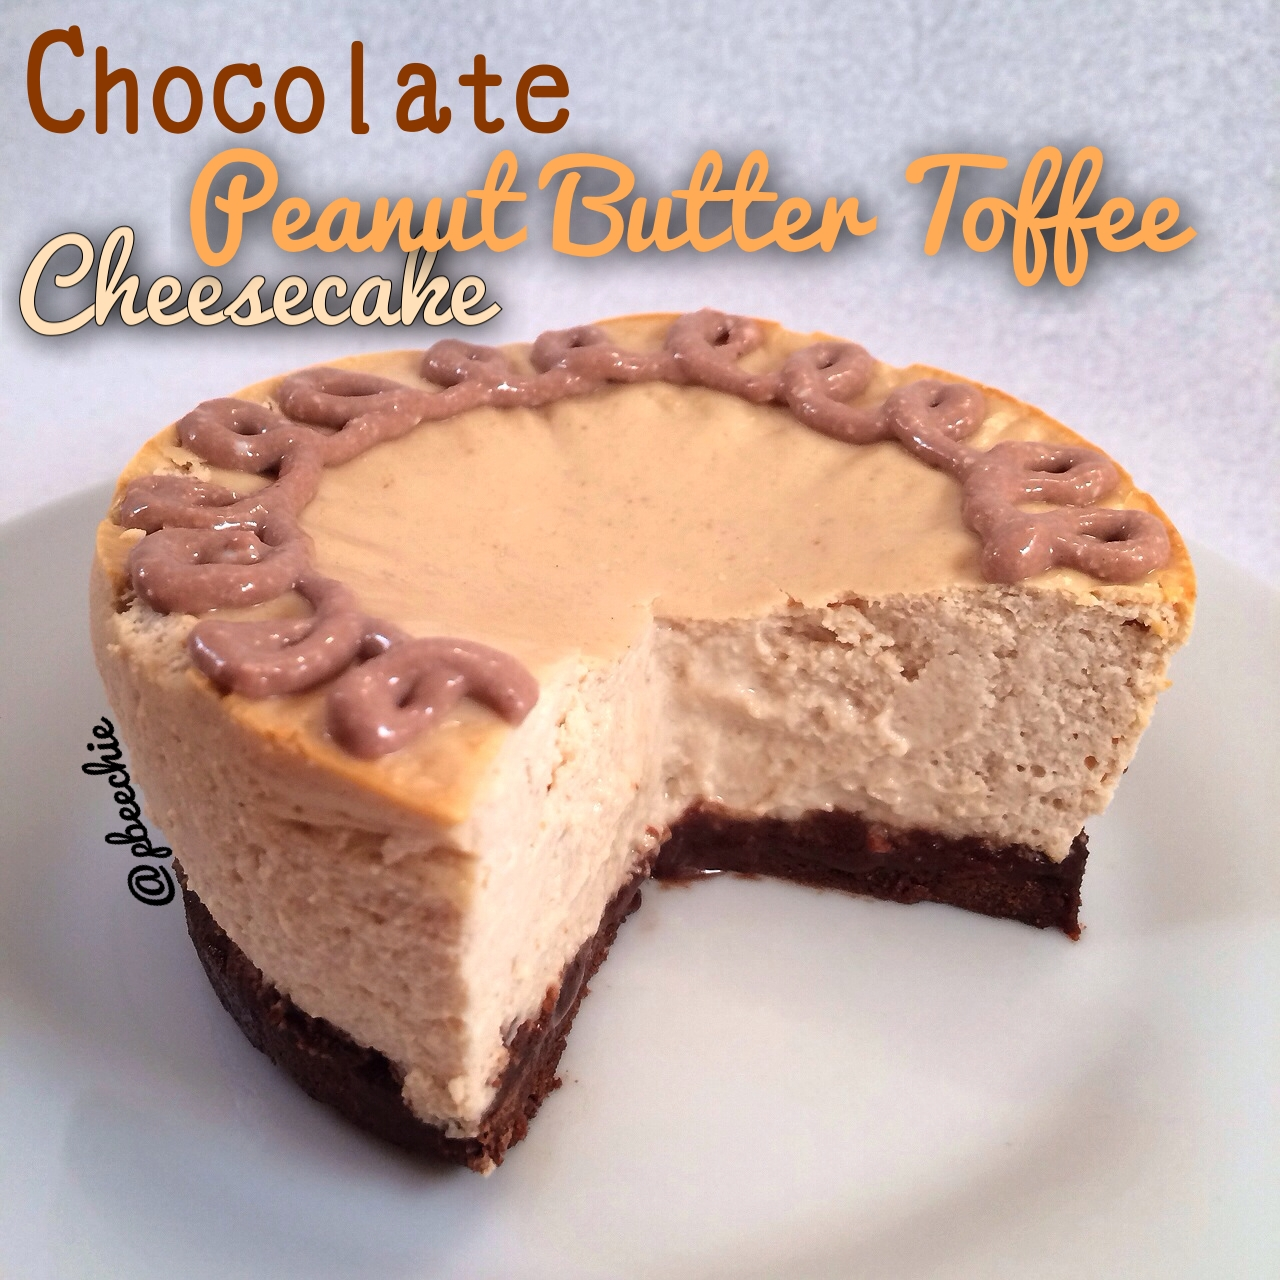 peanut butter toffee peanut butter toffee peanut butter cheesecake ...